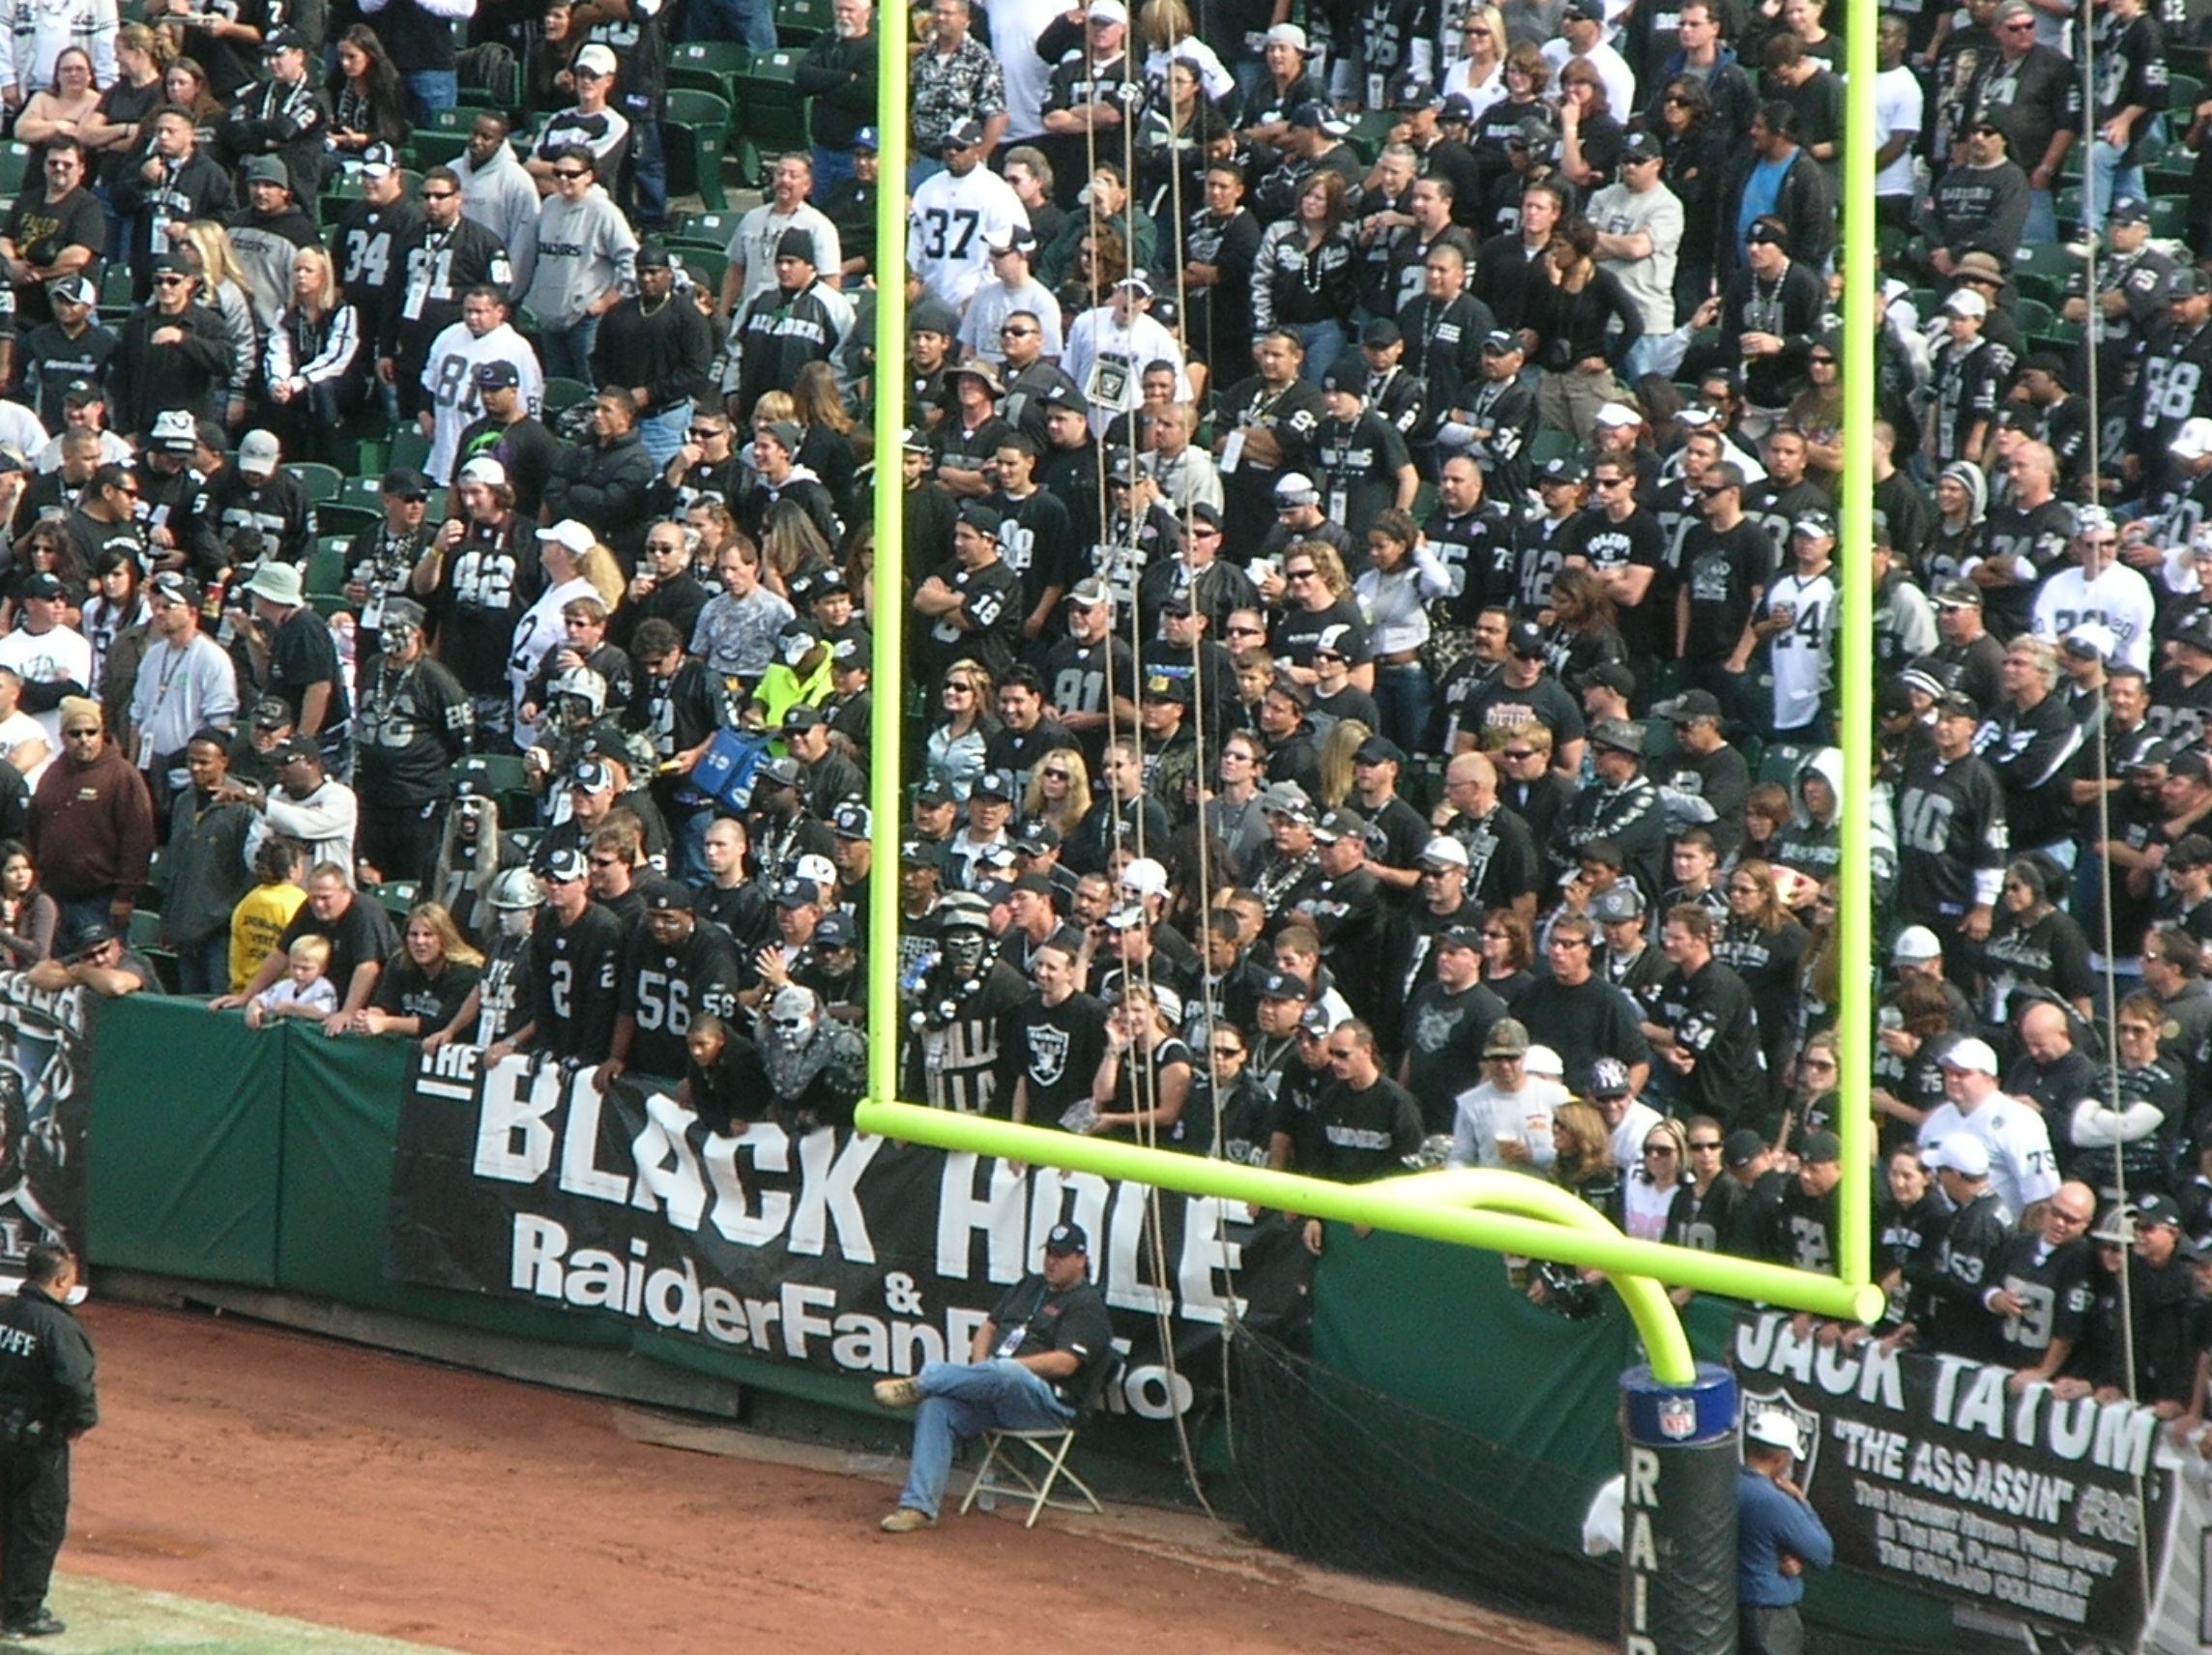 I would defeintely wear black if I was going to be in that section